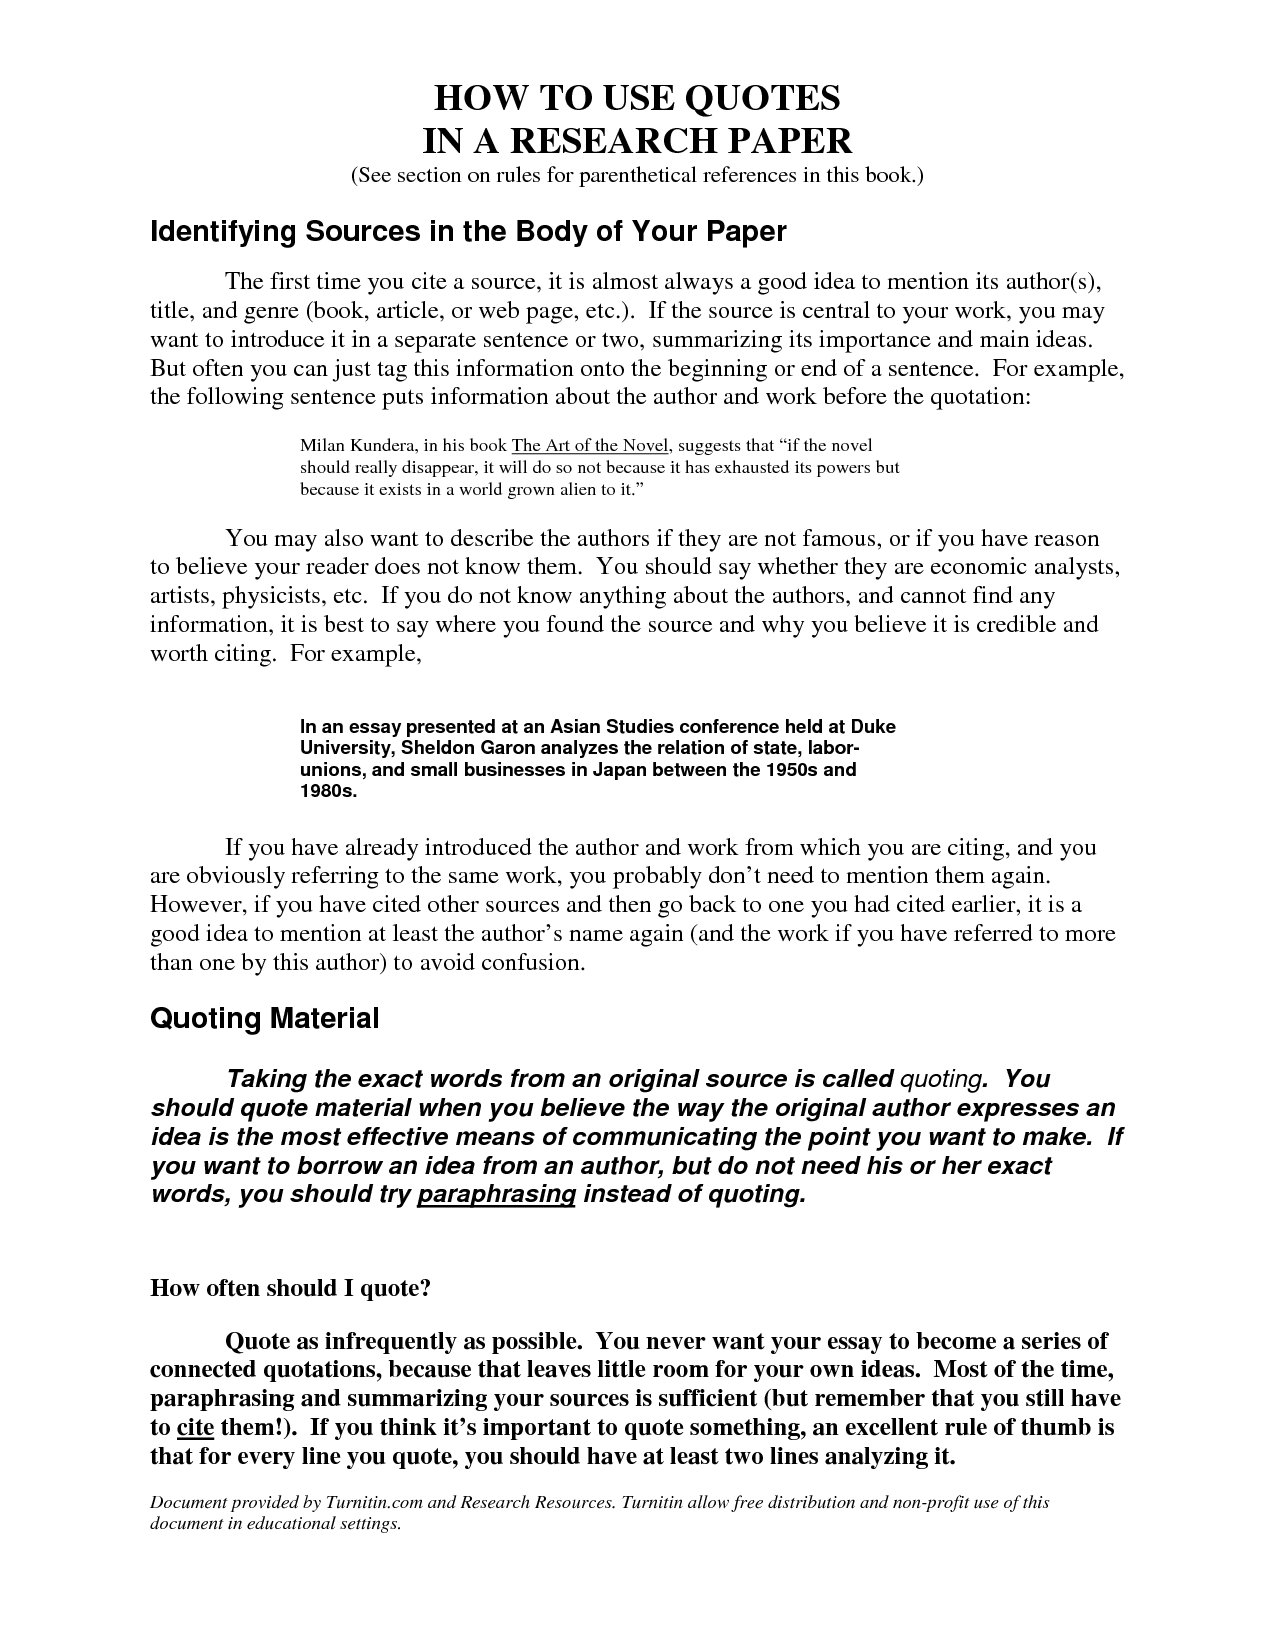 001 Quotes In Essay Format How To Cite Explanatory Quote Beginning With Sample Starting Example Using Frightening Essays Apa Mla Paper Full